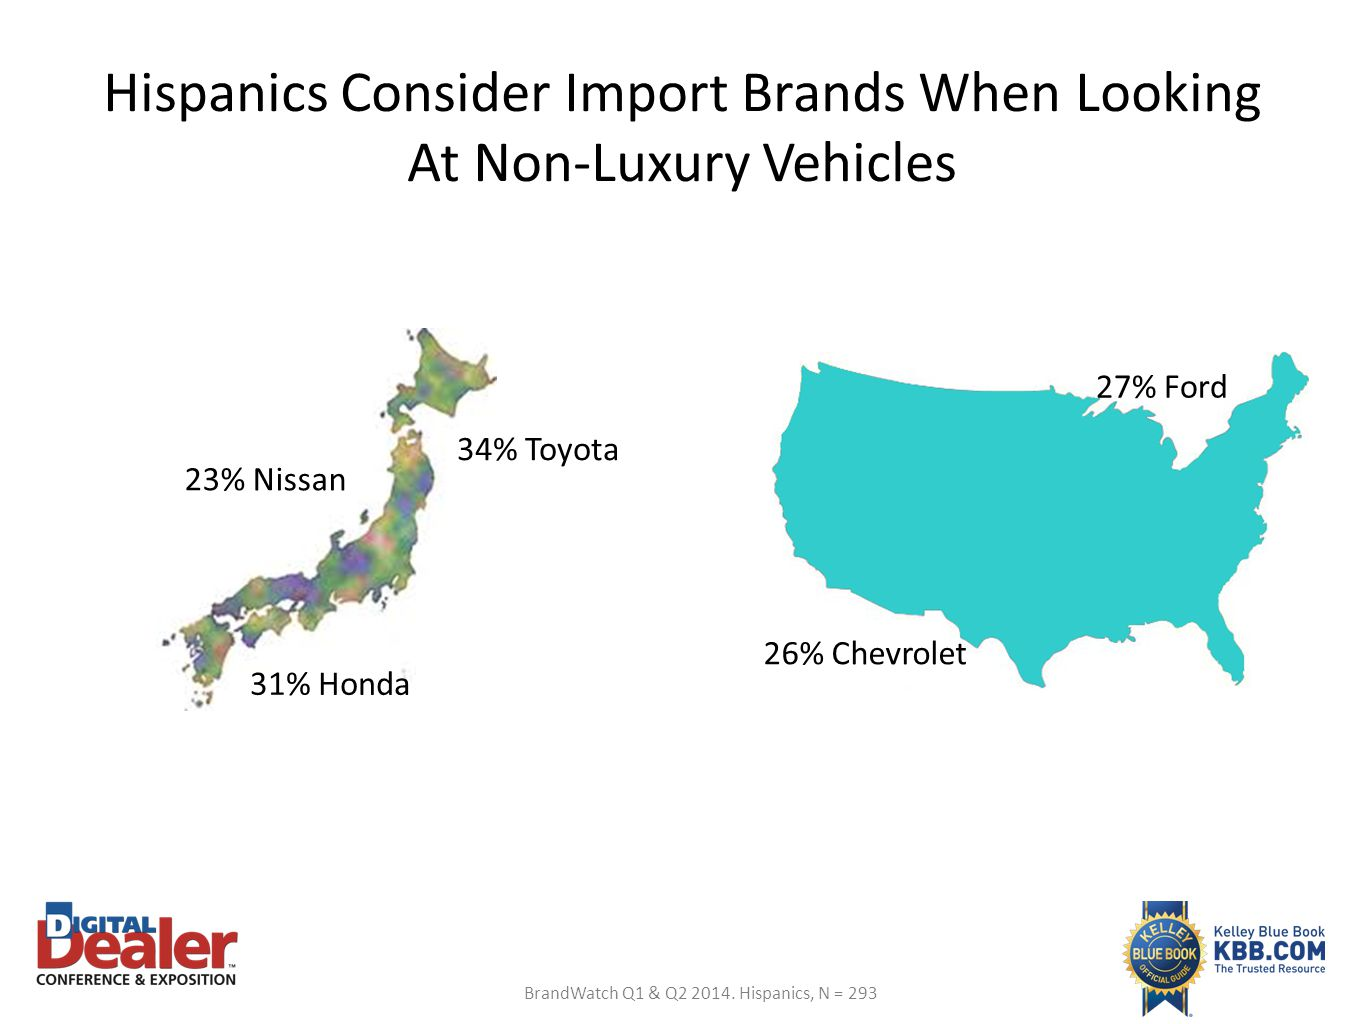 Hispanics Consider Import Brands When Looking At Non-Luxury Vehicles